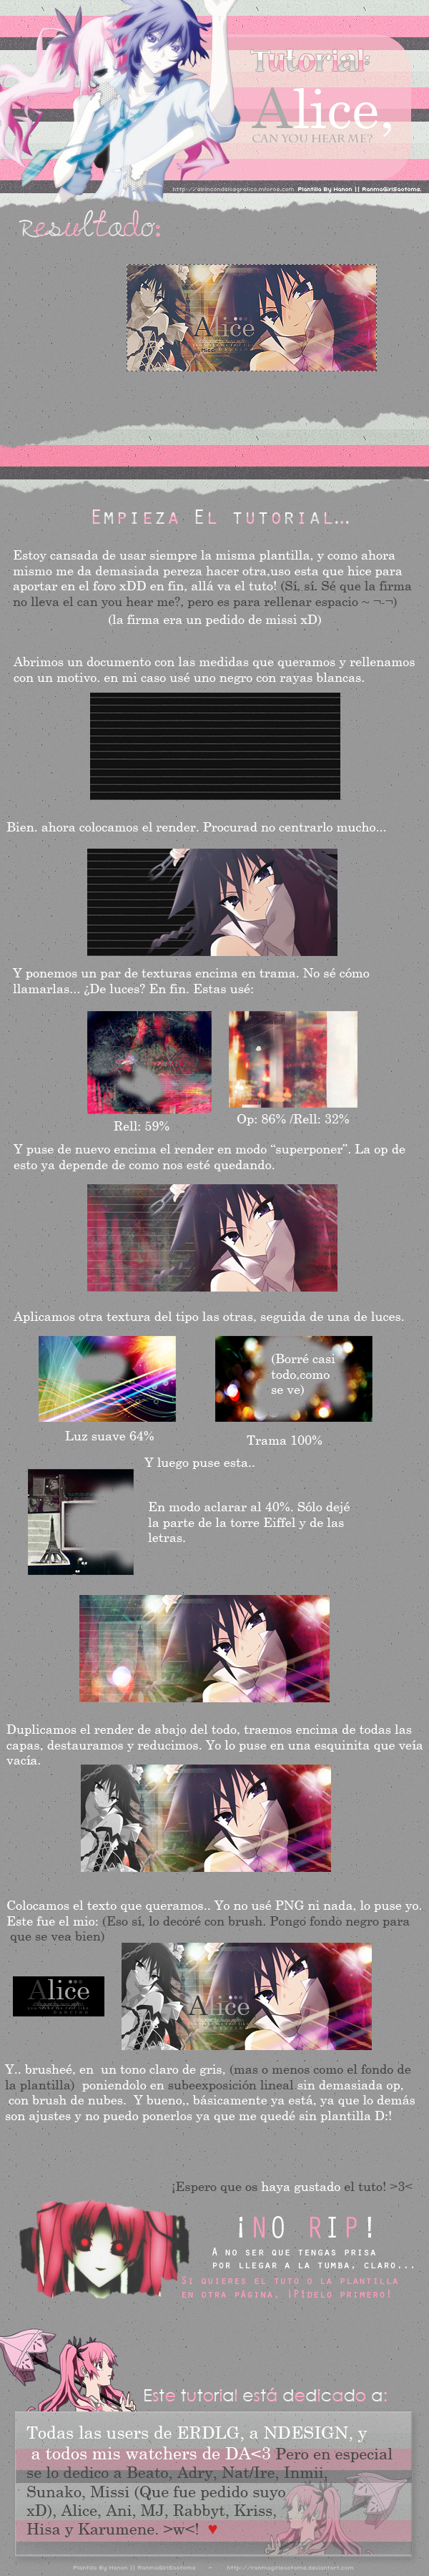 Tutorial: alice, can you hear me? Tutorial__alice__can_you_hear_me__by_ranmagirlsaotome-d4wyzbq